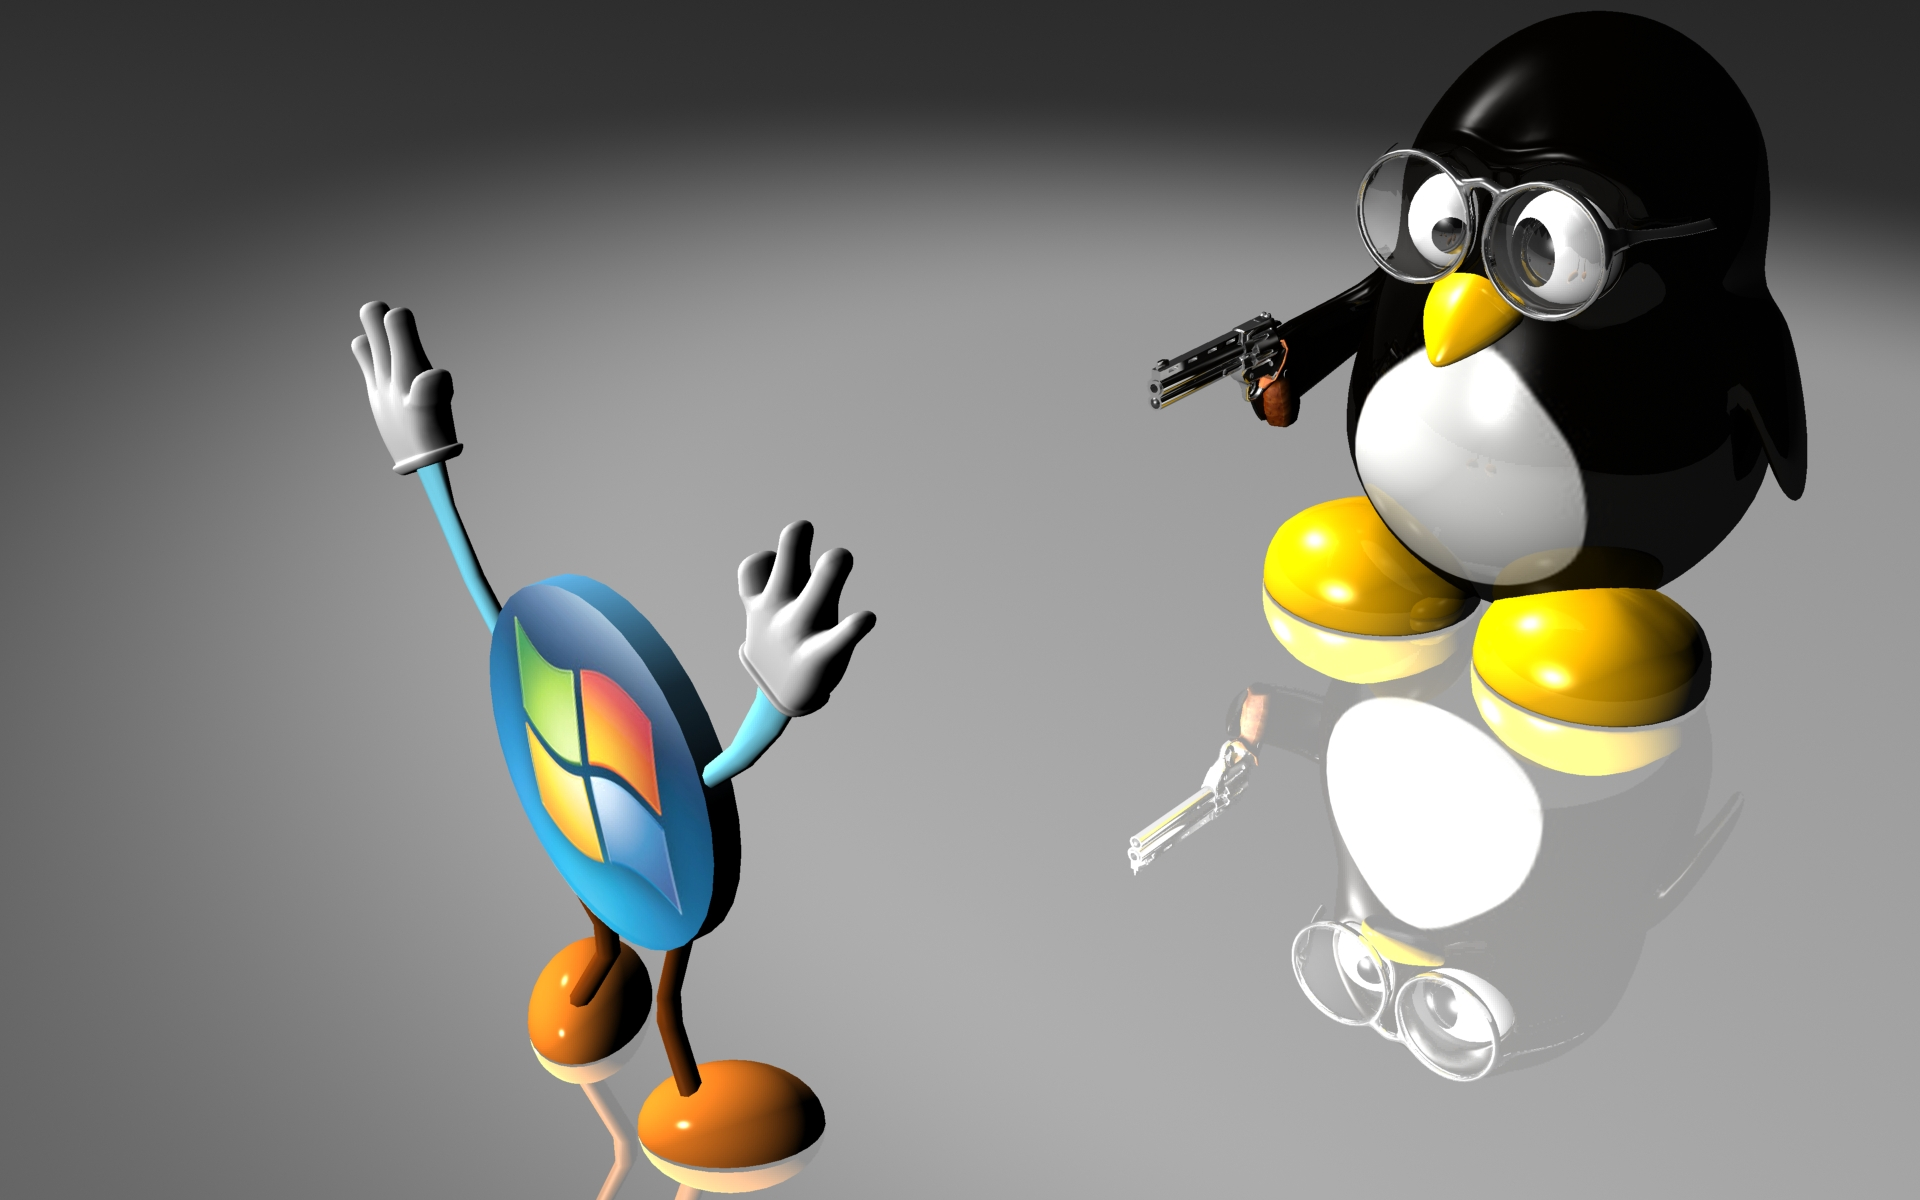 Technologie - Linux  - Penguin - Arbres - Save - Bleu   - Fight - Gun - Humour - Produits - Windows Fond d'écran